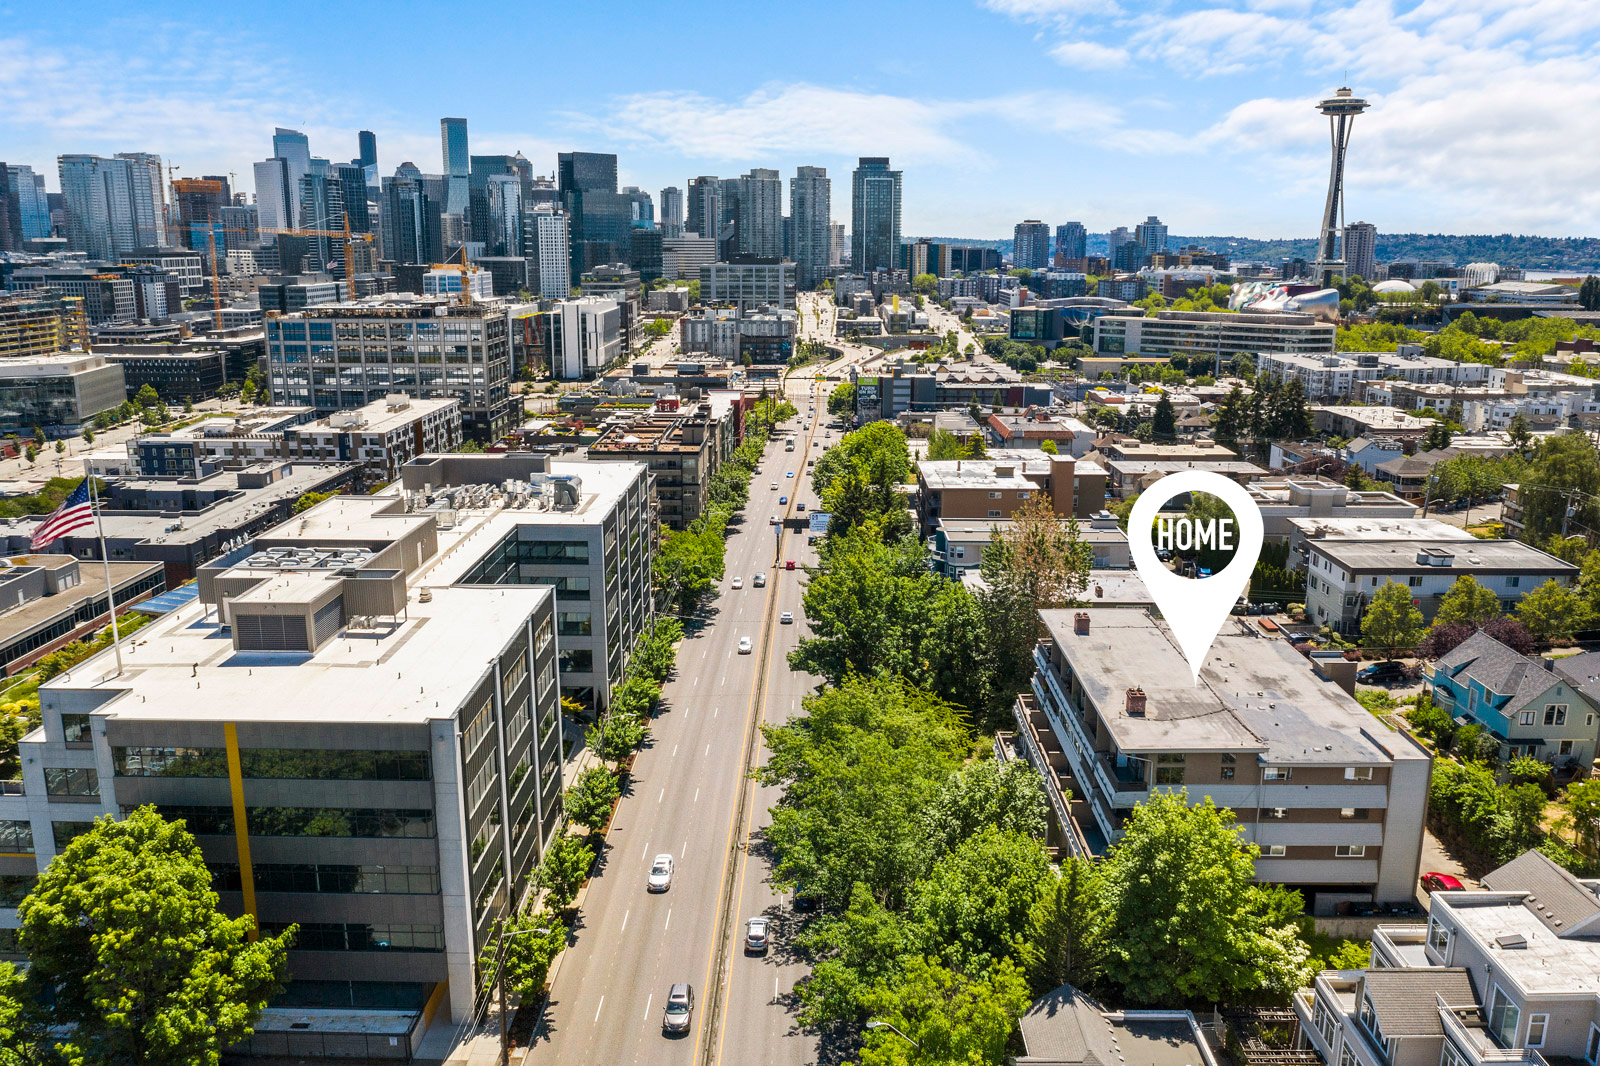 Can't Miss Opportunity for the Savvy Home Buyer for a Smart Condo Investment in Prime Queen Anne!